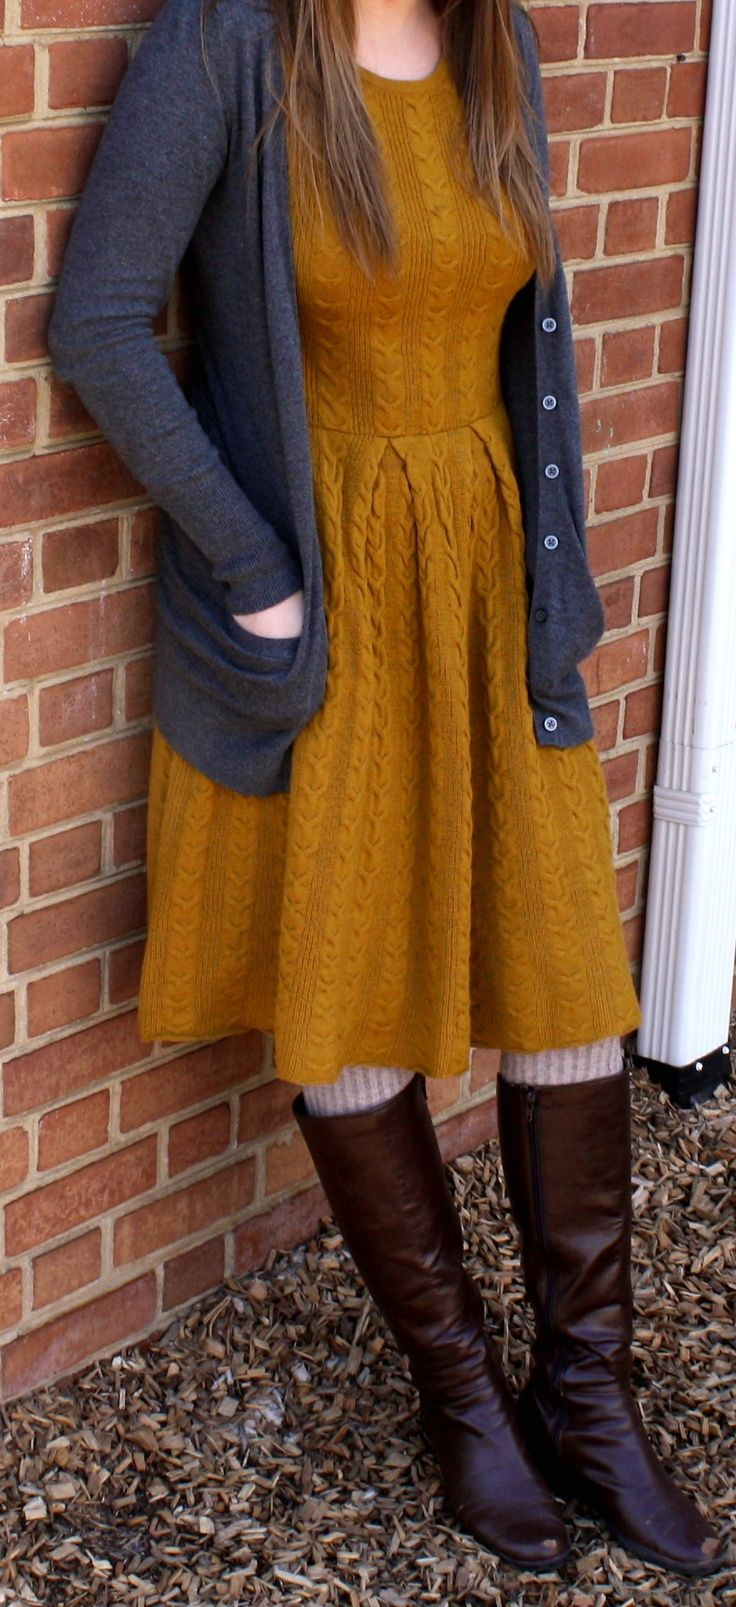 Forum on this topic: Winter Dresses: Your Winter Wardrobe Saviour, winter-dresses-your-winter-wardrobe-saviour/